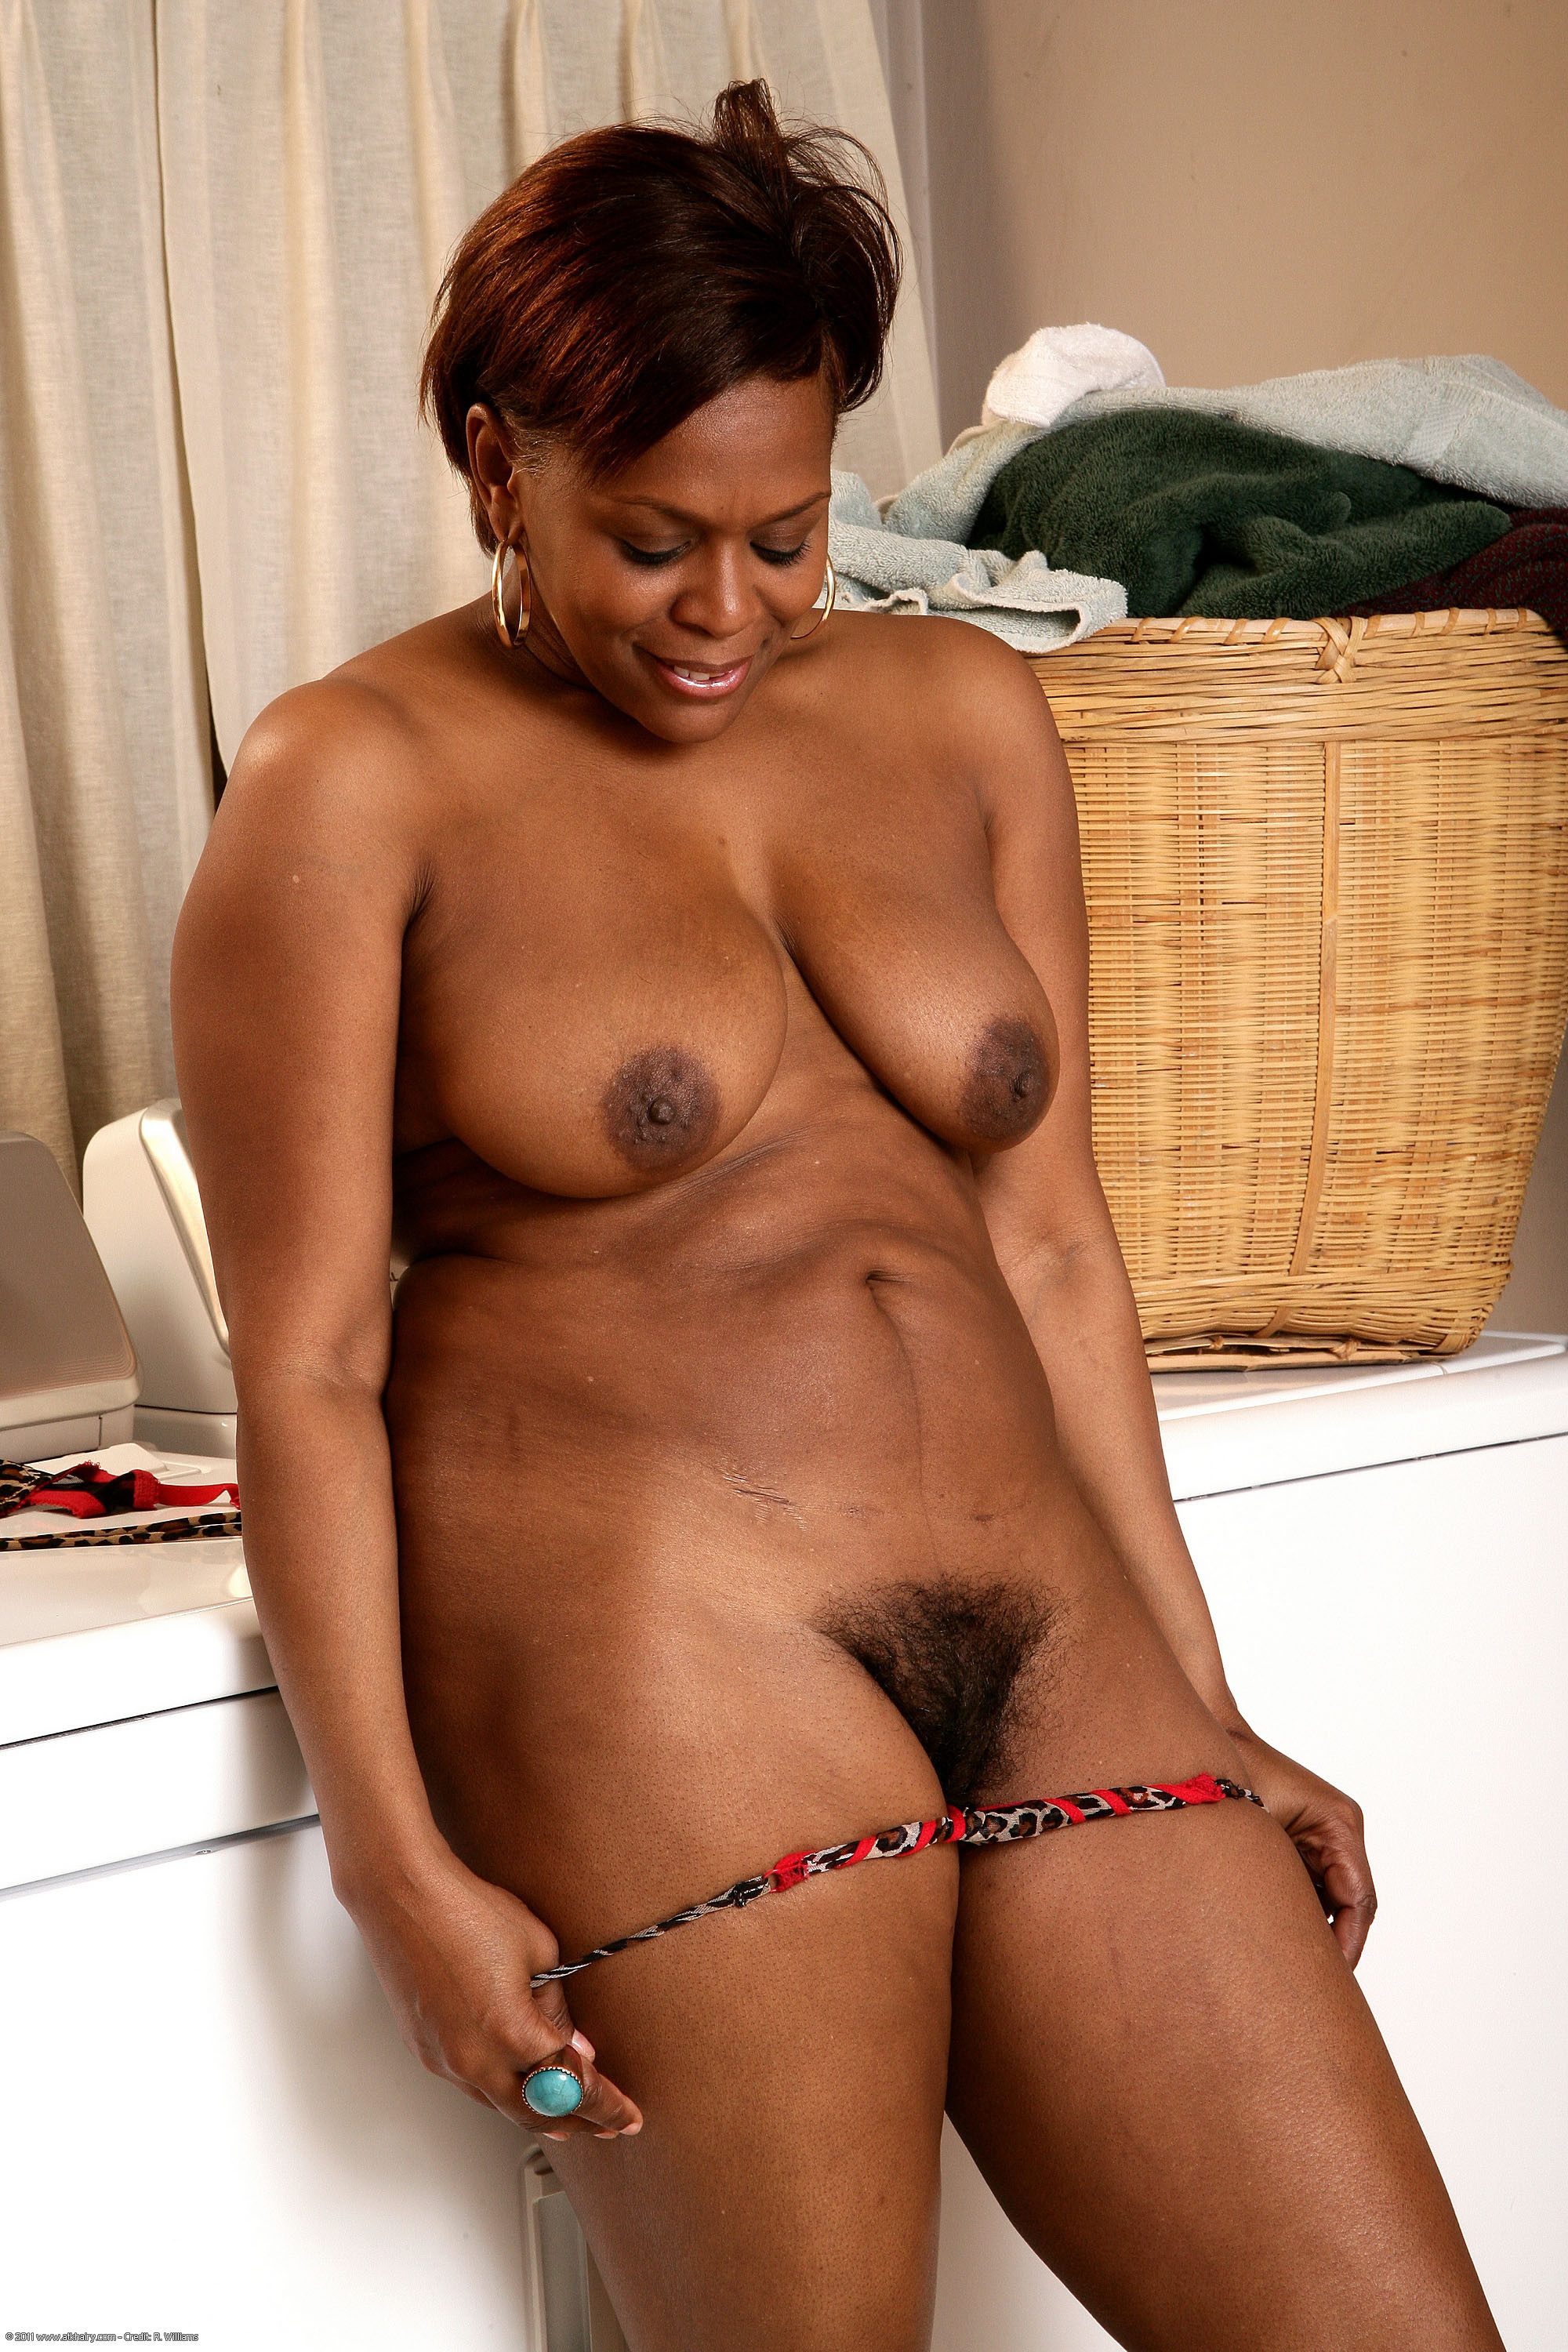 Amateur Mature Porn Ass Hairy Black Tits Wives Panties Ebony Bit